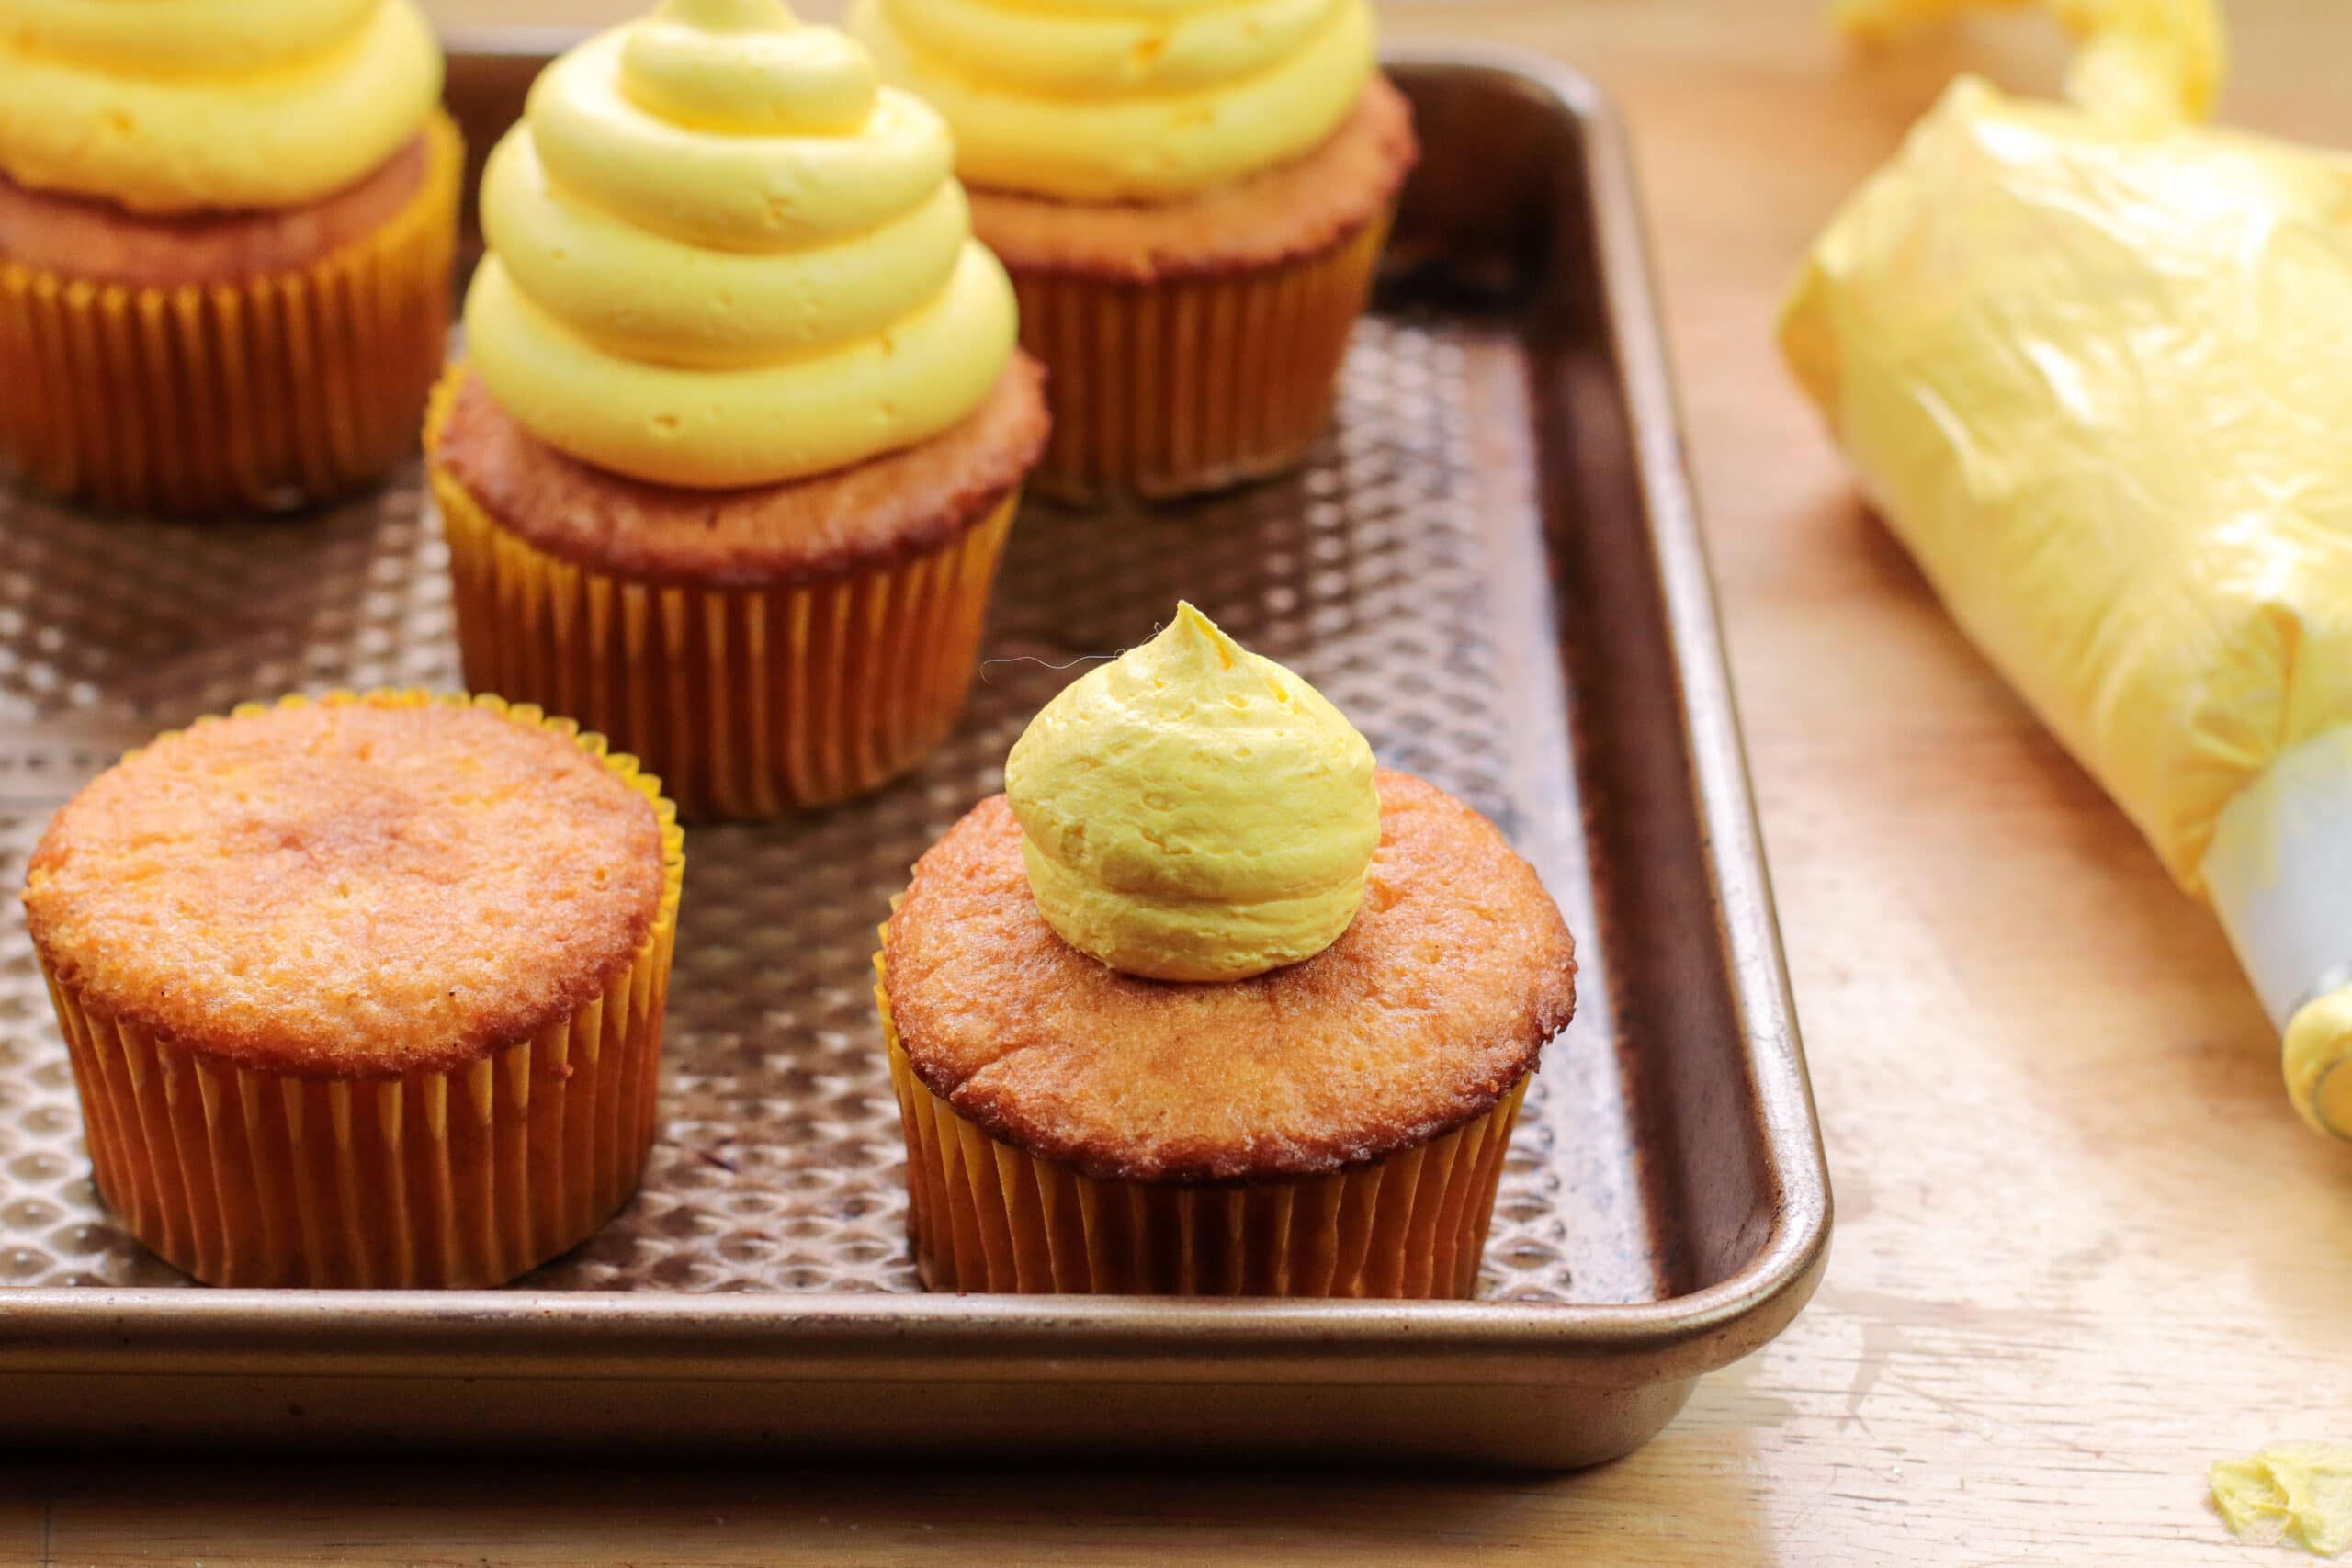 Honey Cinnamon Cupcakes Frosting Steps 6-8. These Bumblebee Honey Cupcakes with Honey Cream Cheese Frosting are insanely delicious. Made with a touch of honey and cinnamon, these bumblebee inspired cupcakes are almost too cute to eat.